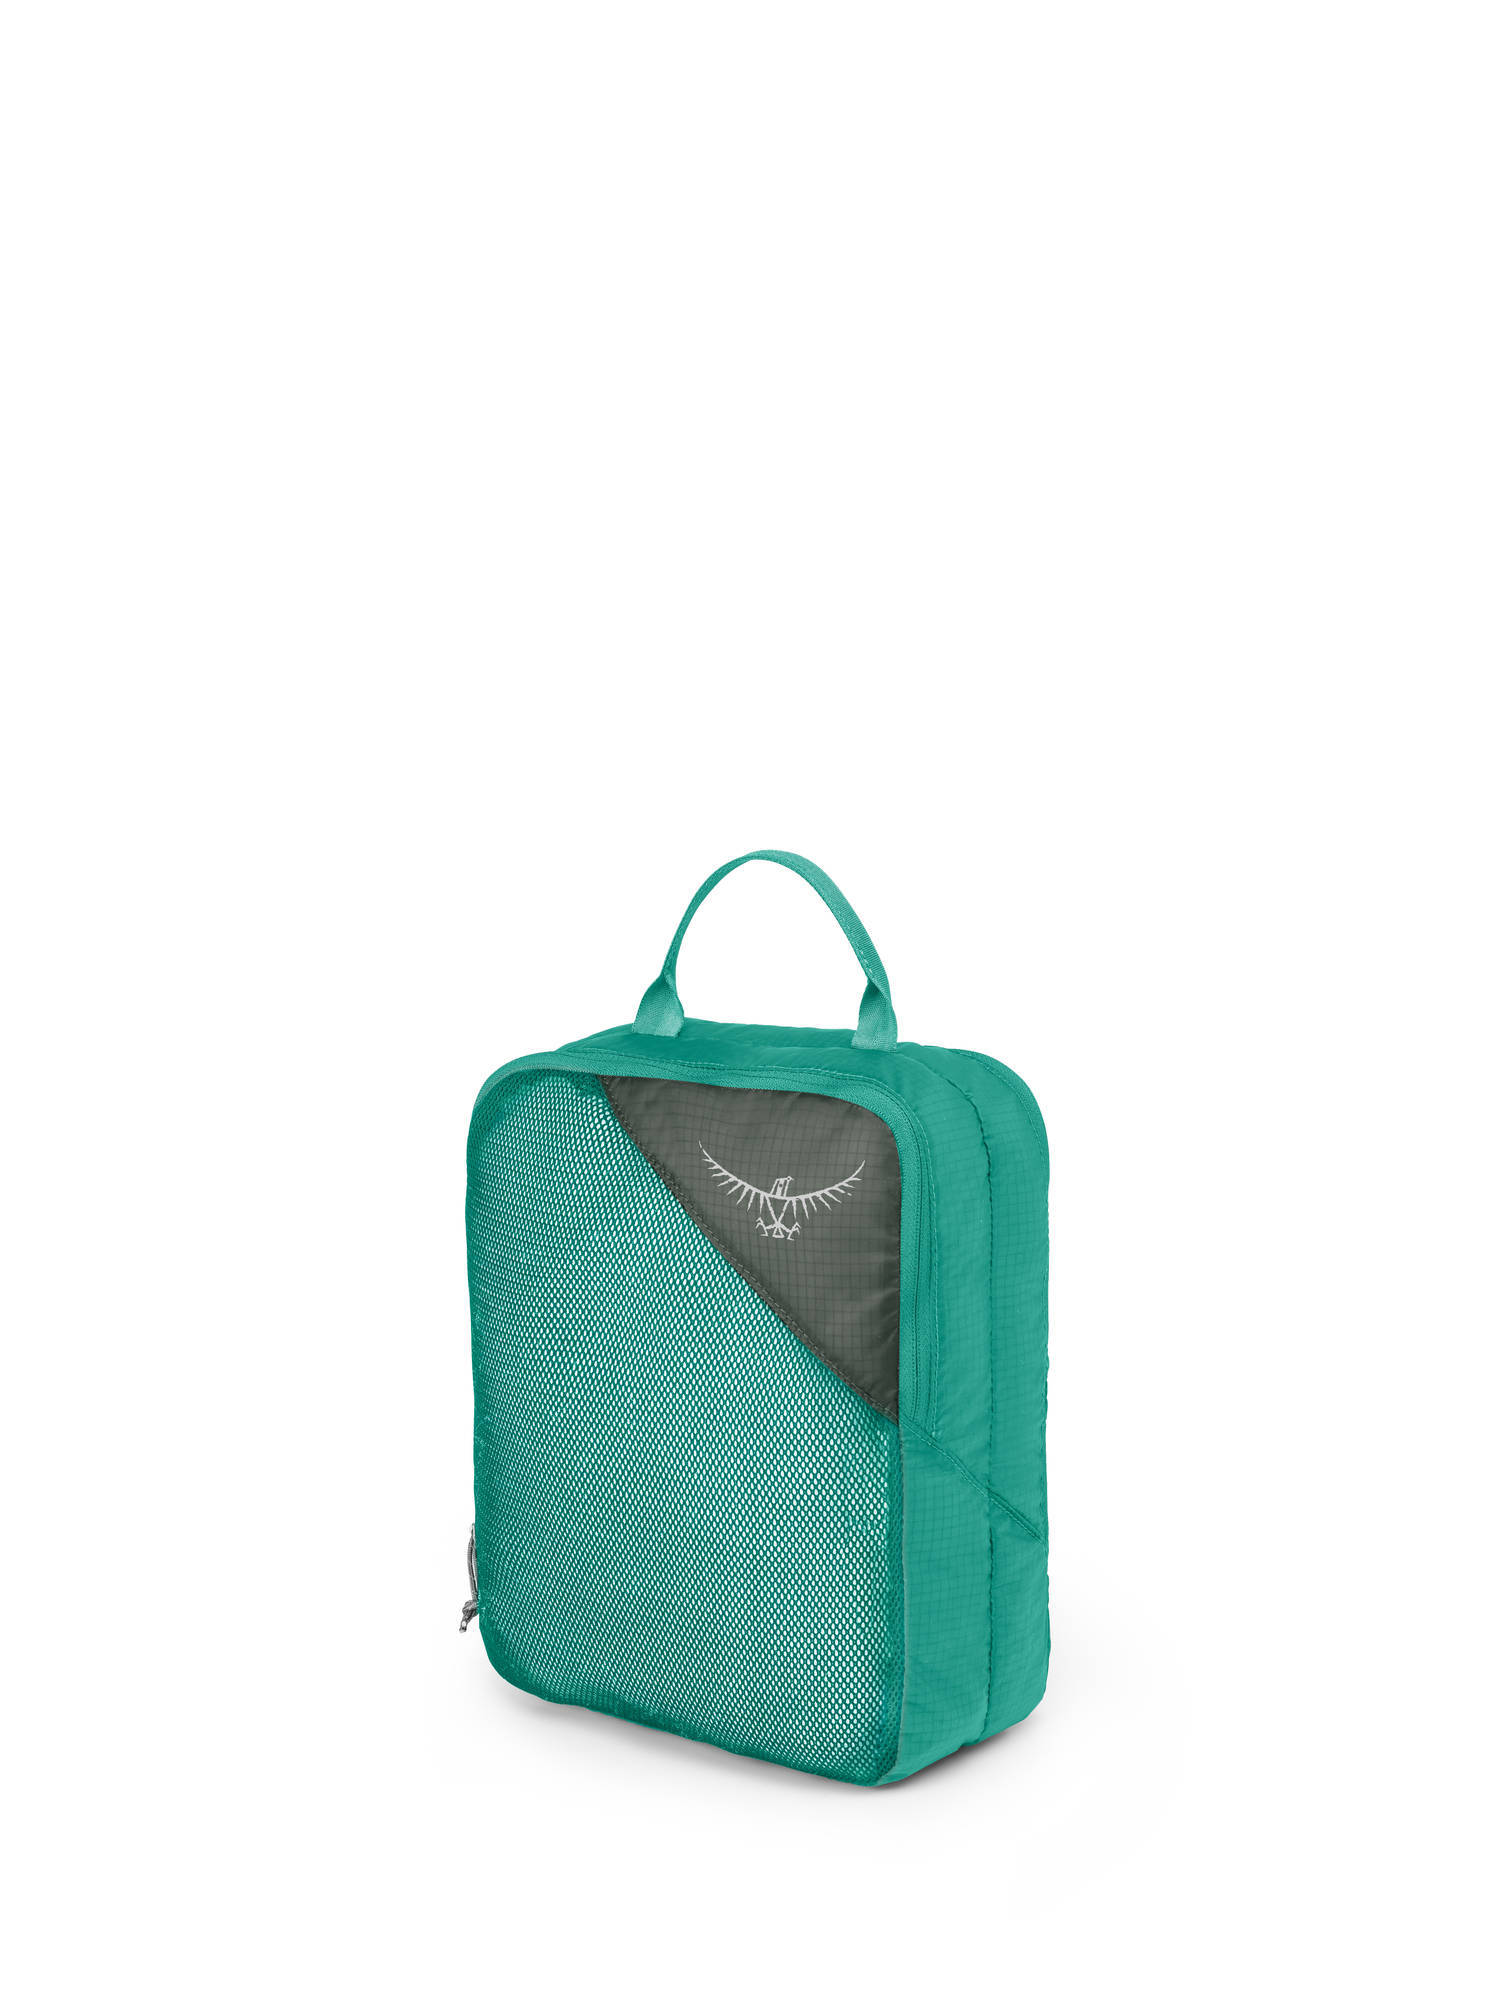 Аксессуары Чехол для одежды Osprey Ultralight Double Sided Cube Medium Tropic Teal UL_Double_Sided_Cube_M_F17_Side_Tropical_Teal_web.jpg